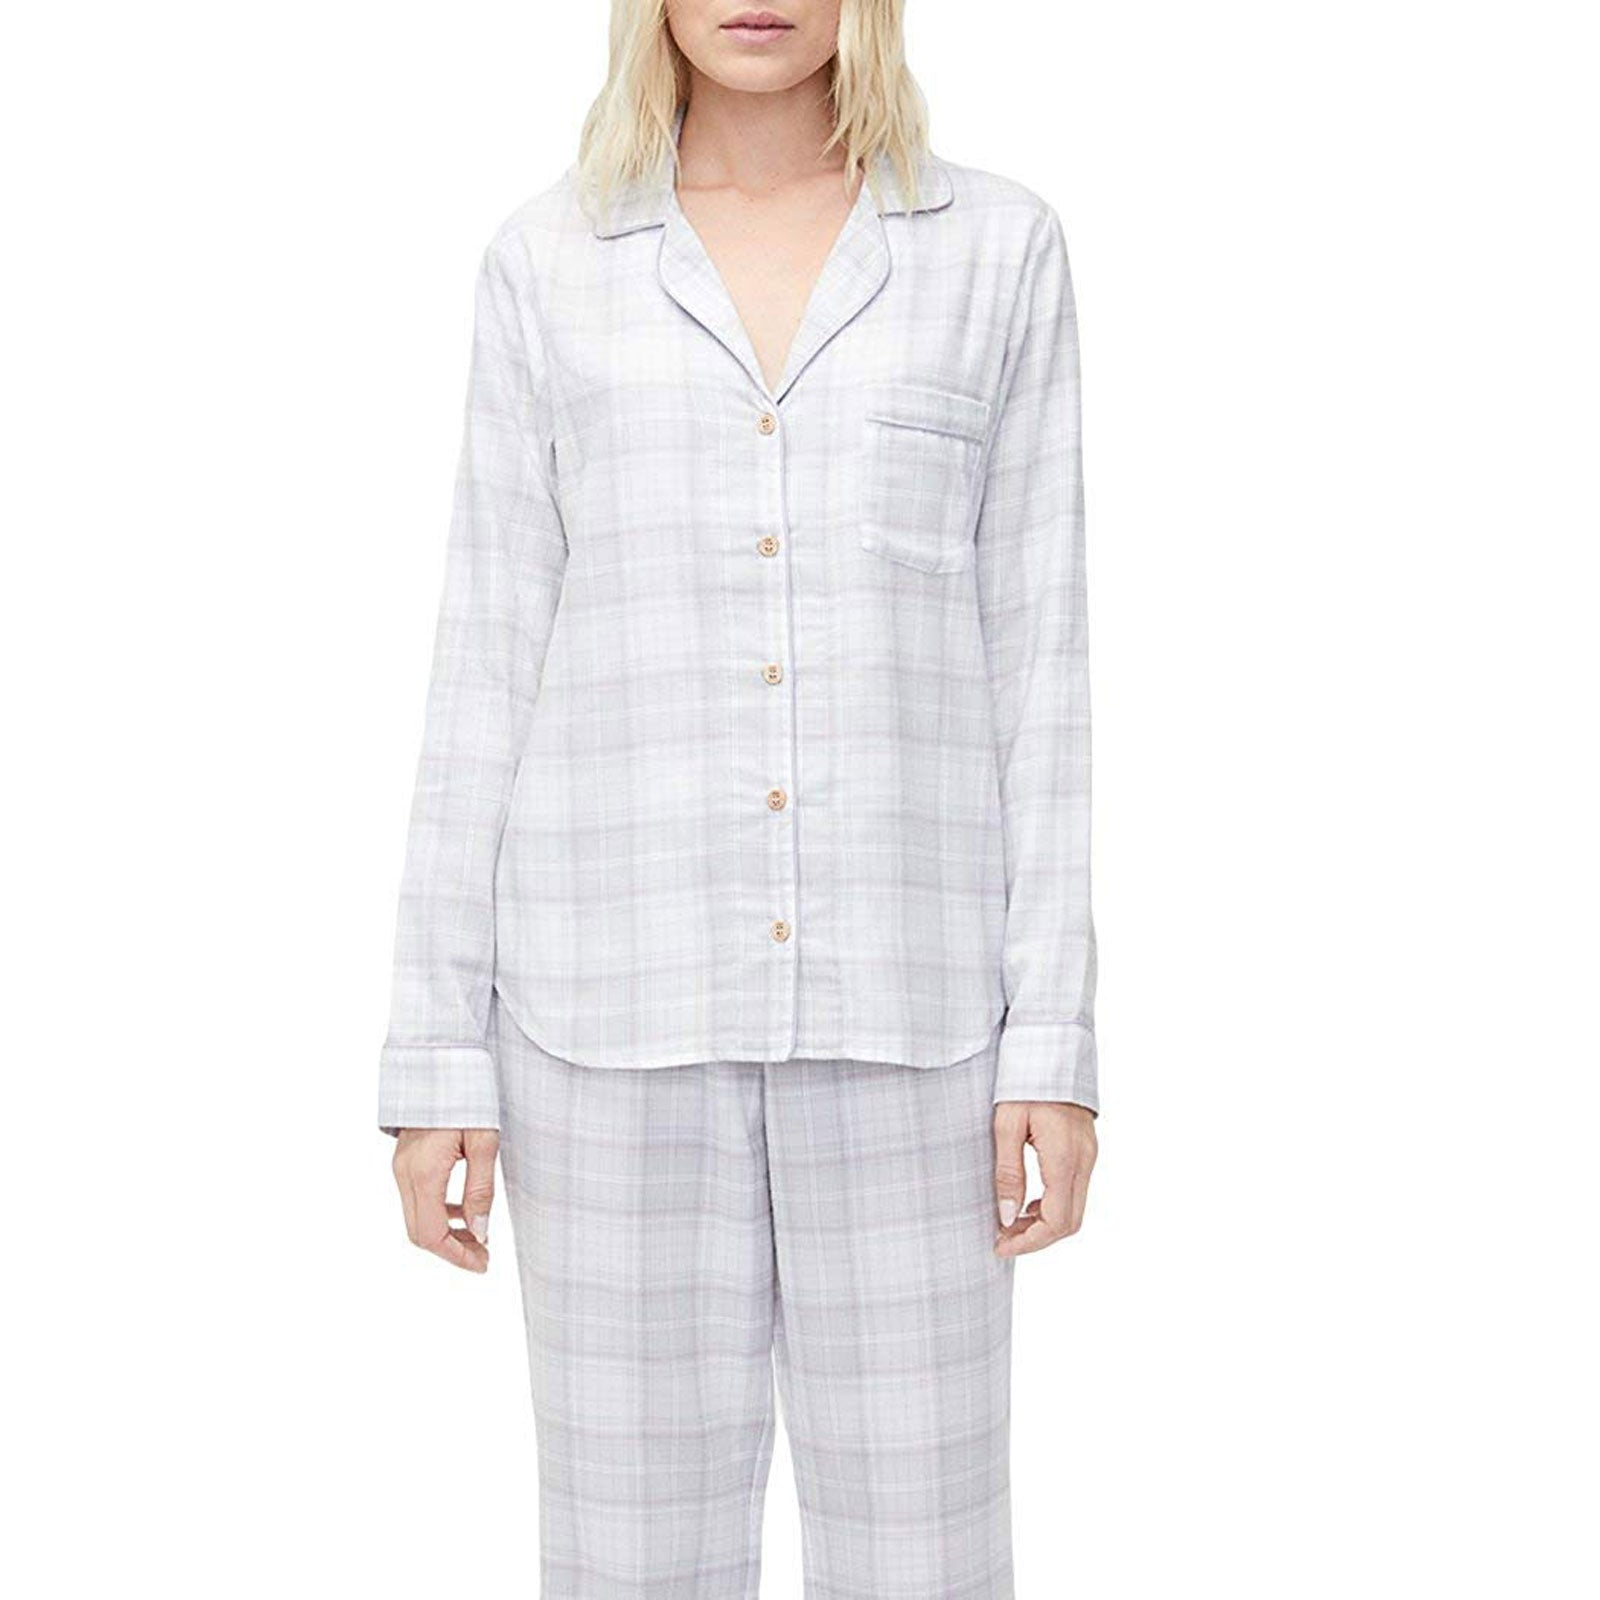 Sleepwear - Apparel